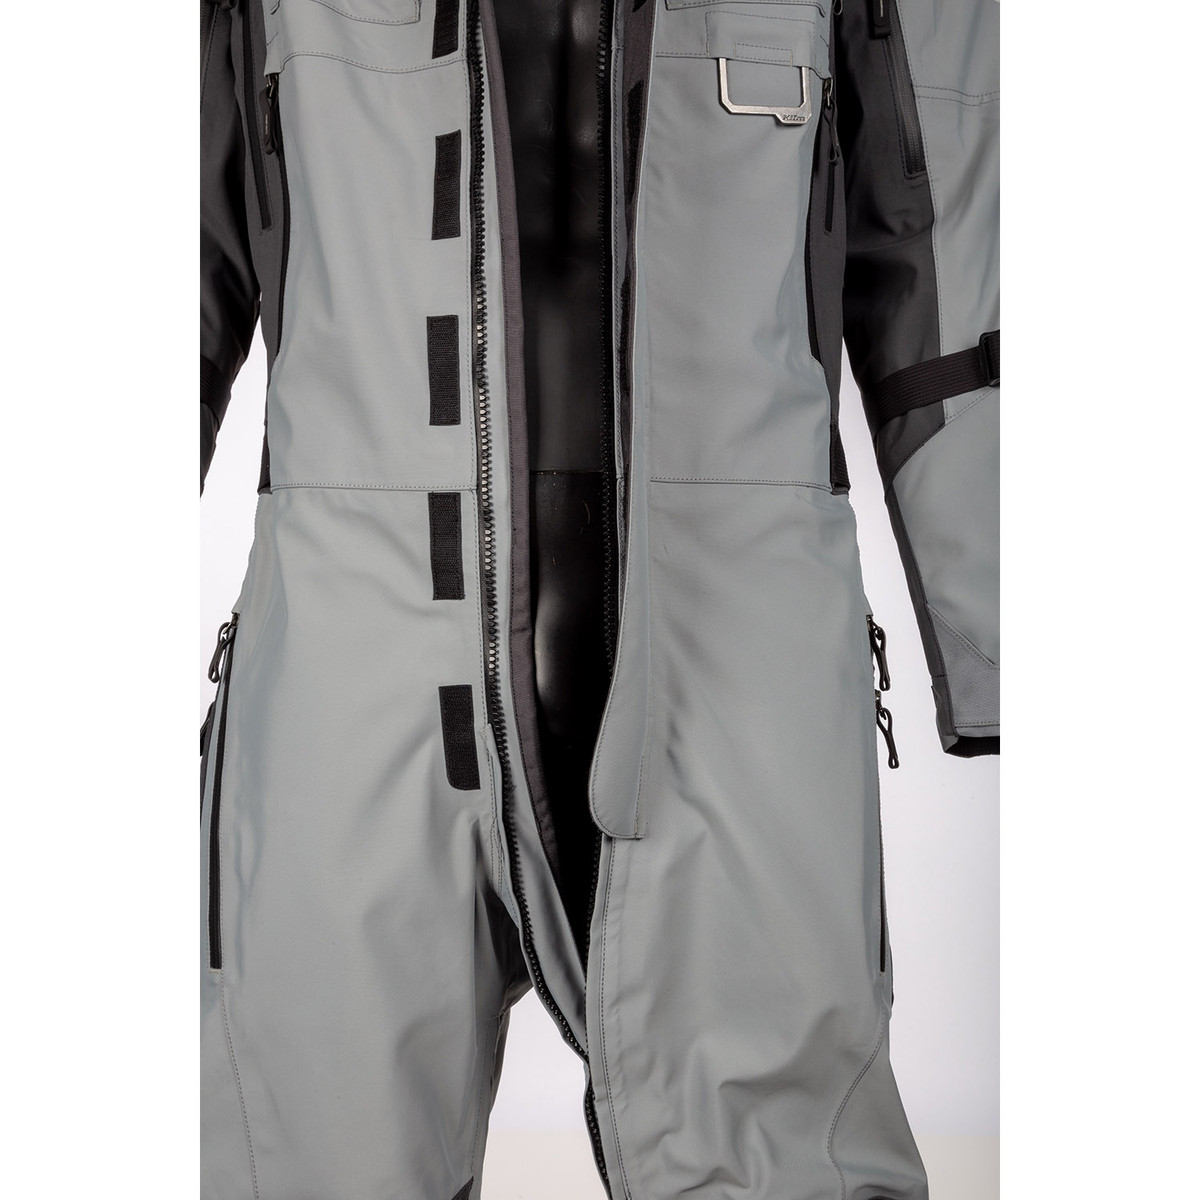 Klim Hardanger Suit Full Zipper Detail